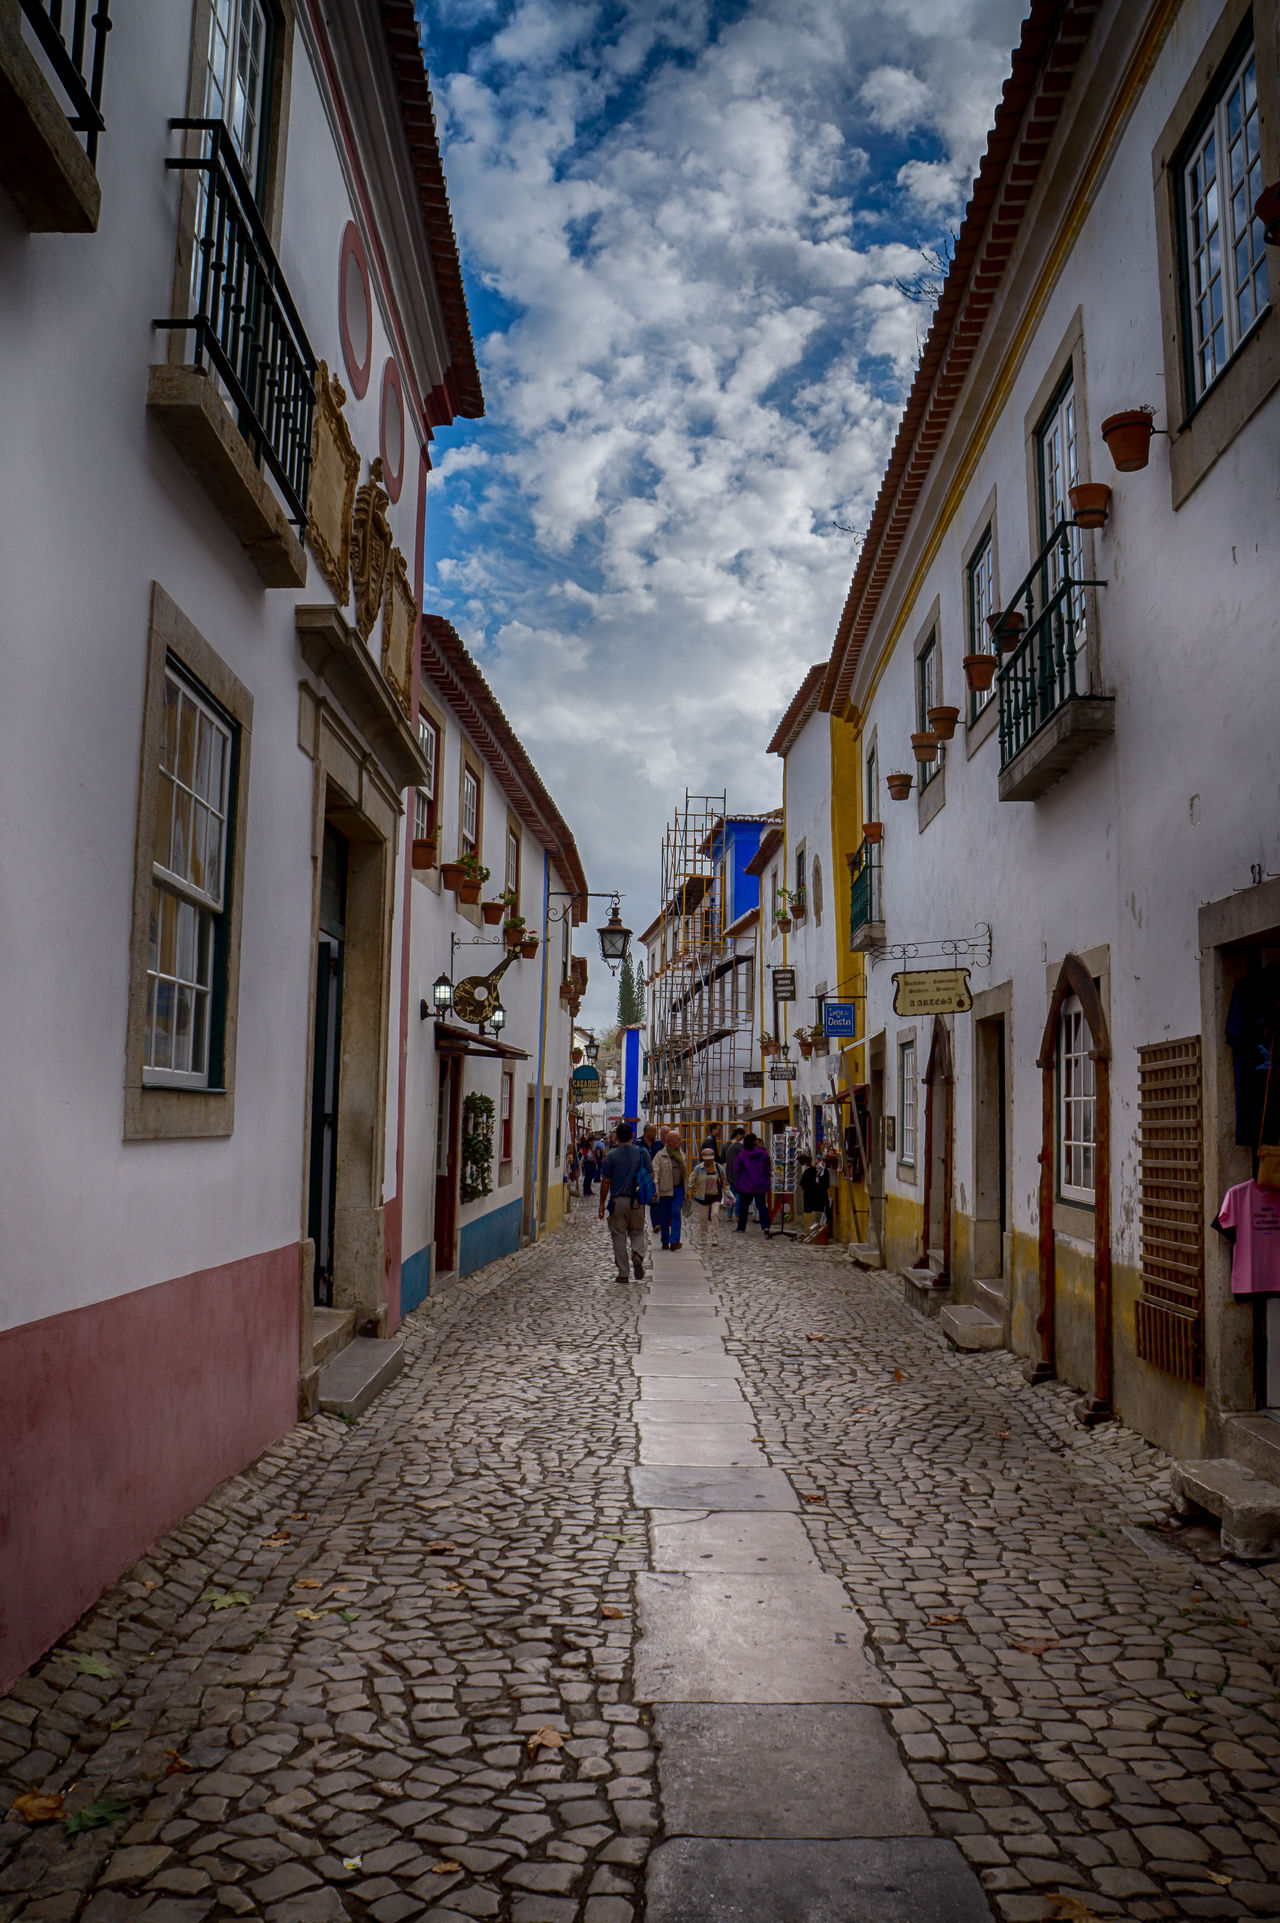 """Óbidos is a Portuguese town in the district of Leiria, in the Centre Portuguese region and close to the Atlantic Ocean coast. The name Óbidos comes from the Latin """"oppidum"""", which means """"fortified city"""". Definitely a """"must see destination"""" on your next trip to this surprising country. Find more here http://bit.ly/1NjgnA5 Architecture Beautiful Building Building Exterior Built Structure Cities City Discovering Europe Exterior Historic Leiria Medieval Narrow Outdoors Photography Places Portugal Street Town Travel Traveling Visiting Window Óbidos"""